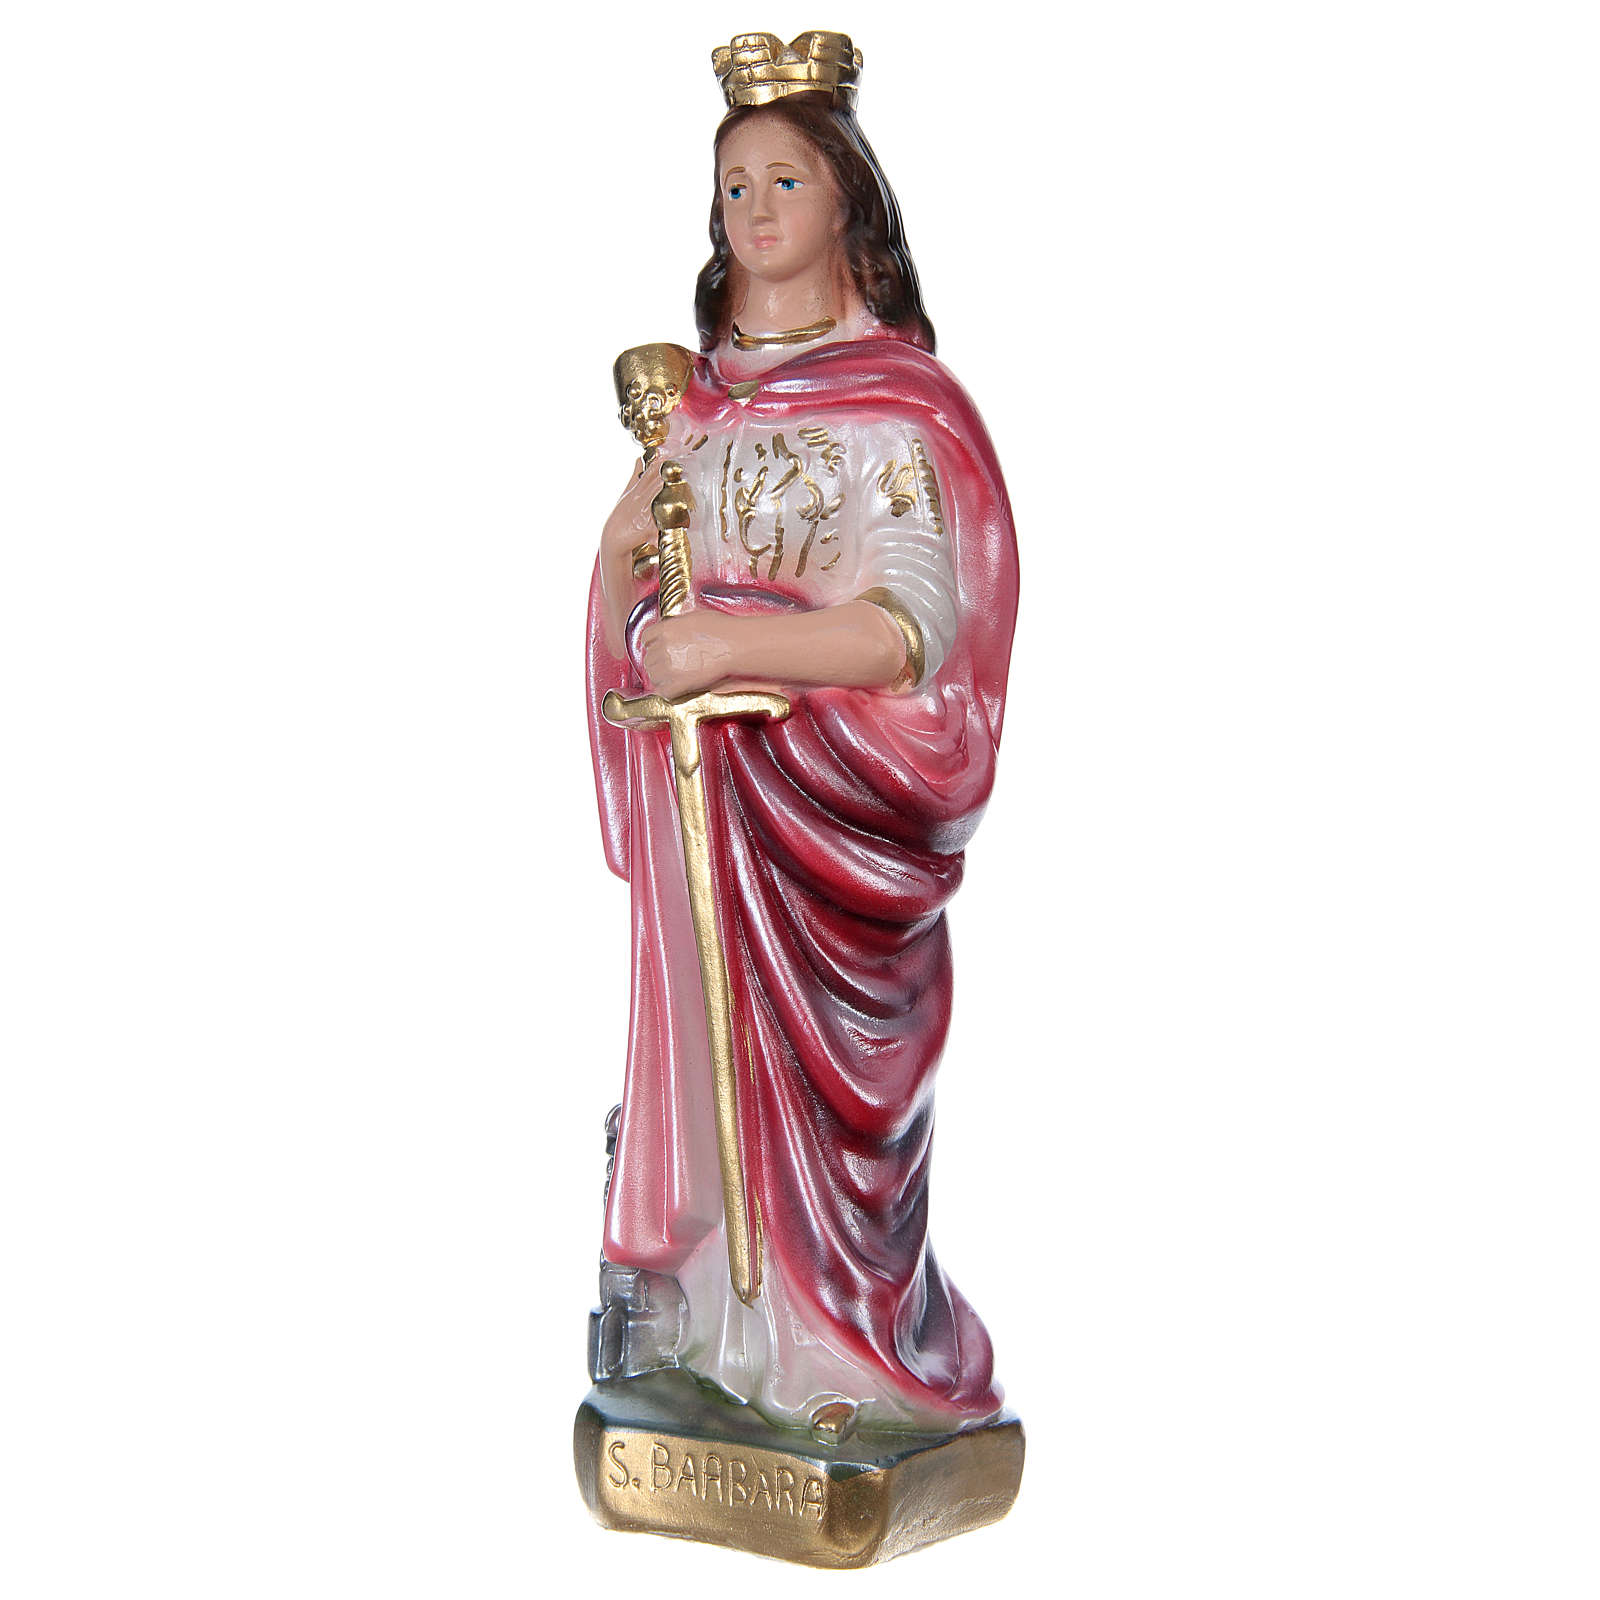 St Barbara 20 cm in mother-of-pearl plaster 4